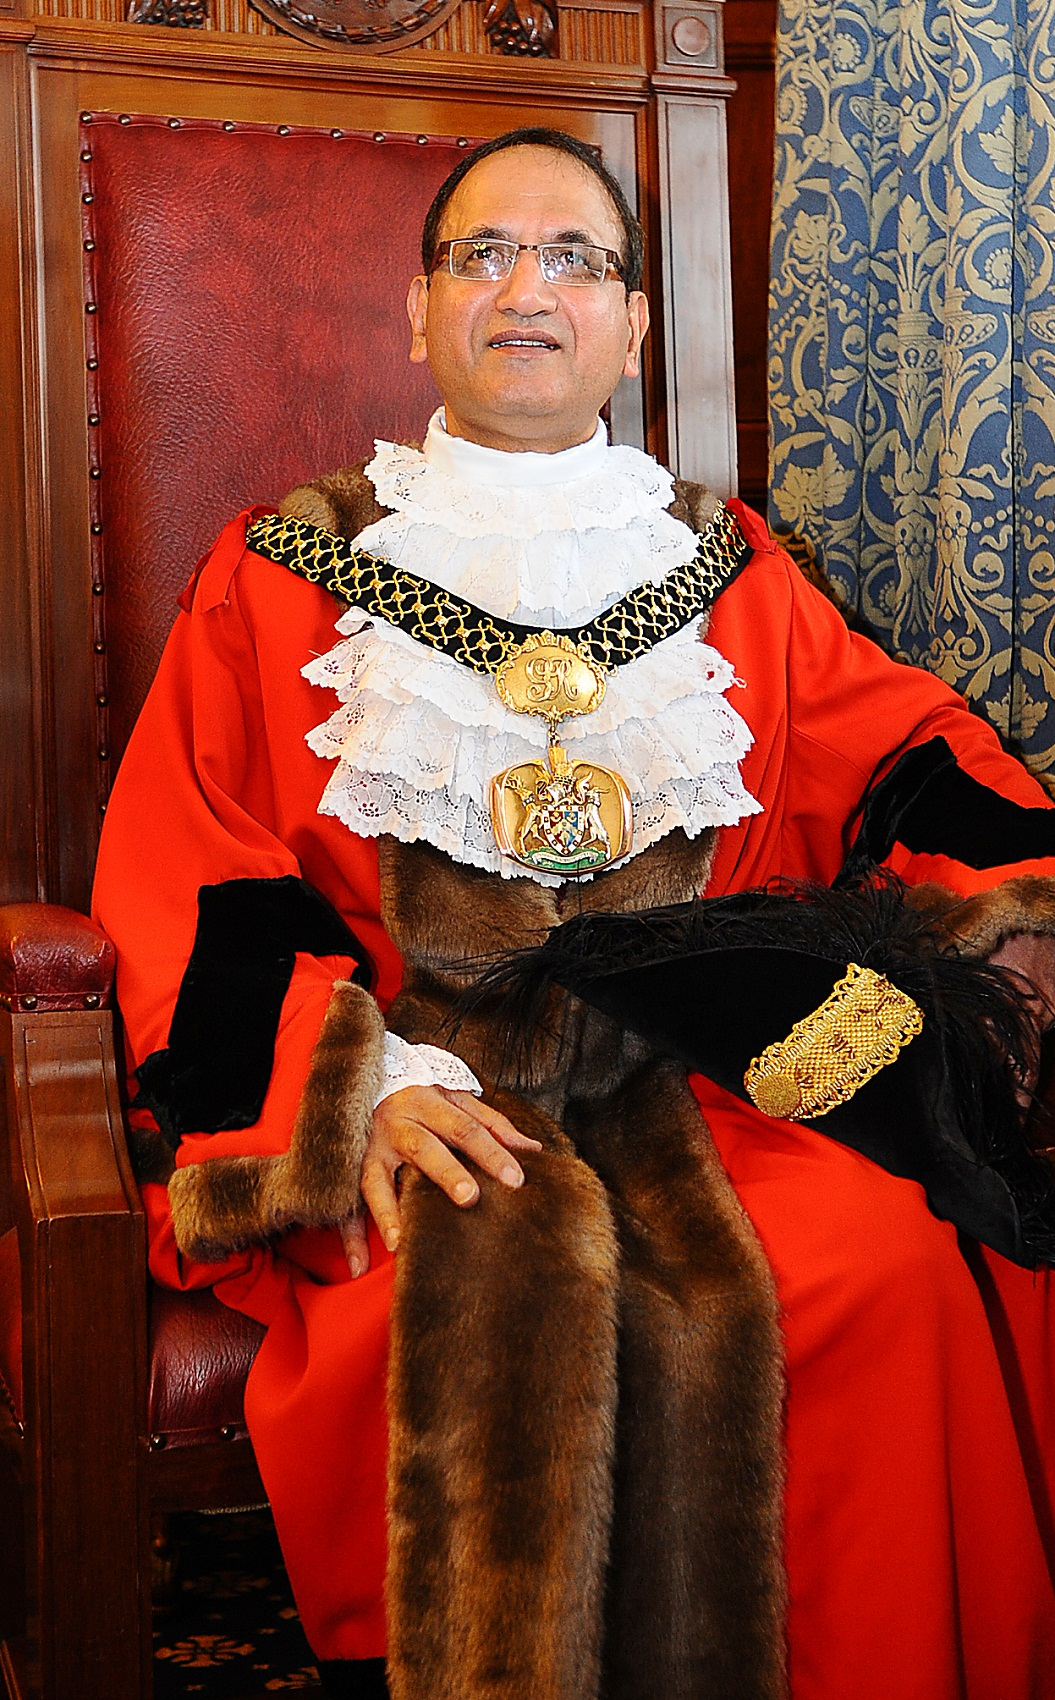 Councillor Khadim Hussain, the Lord Mayor of Bradford